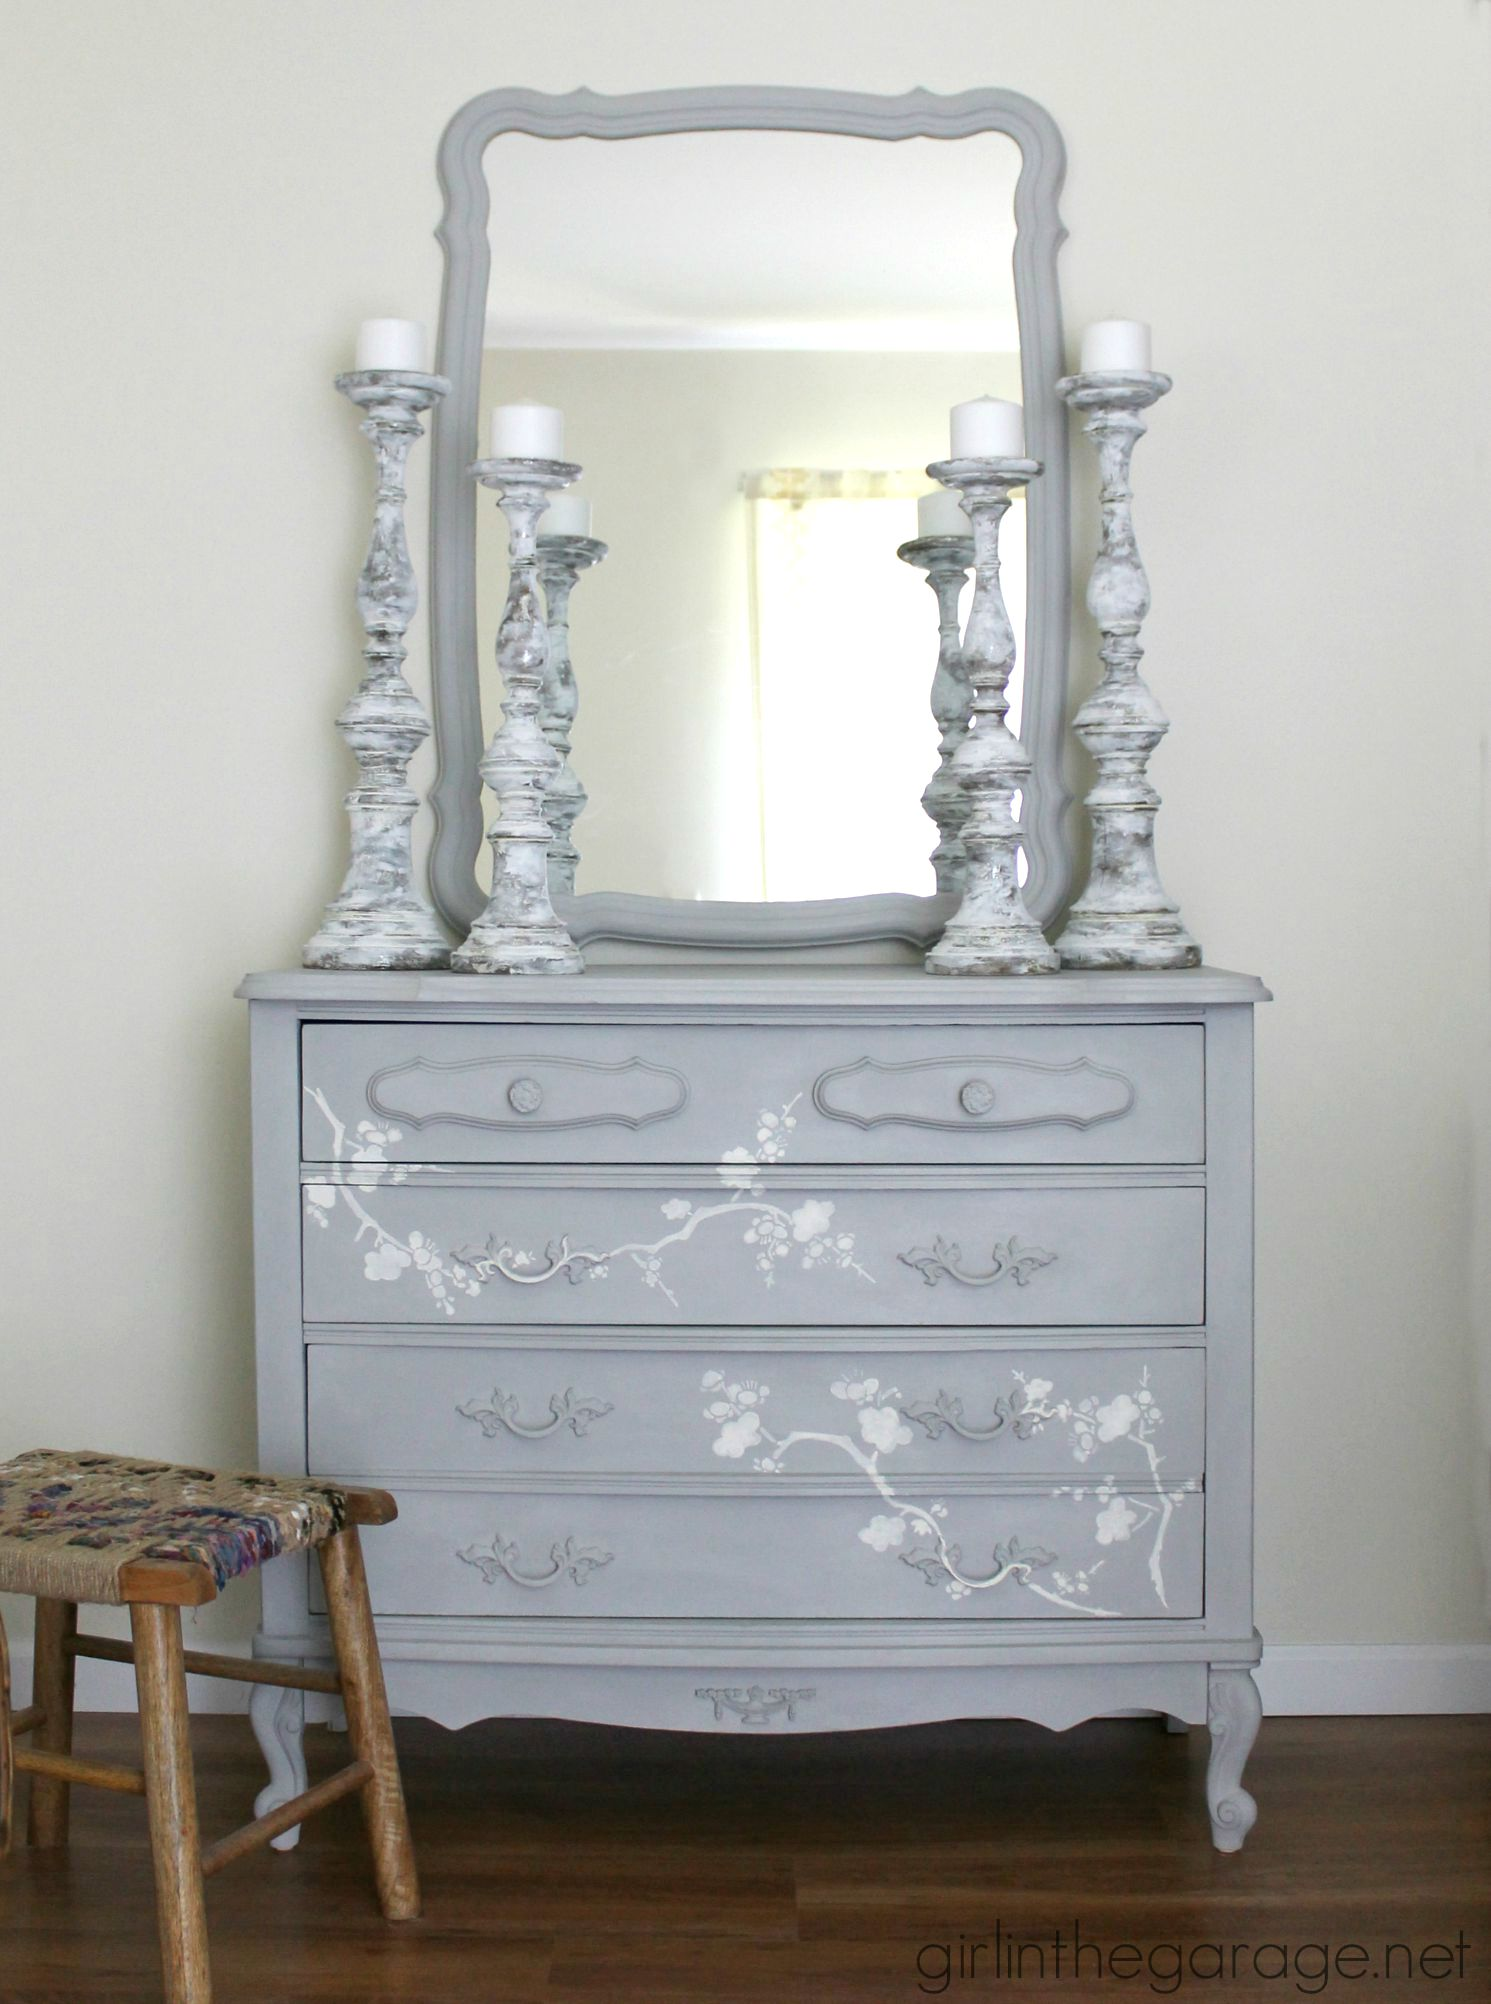 Chalk Paint and Cherry Blossoms – A Dresser Makeover